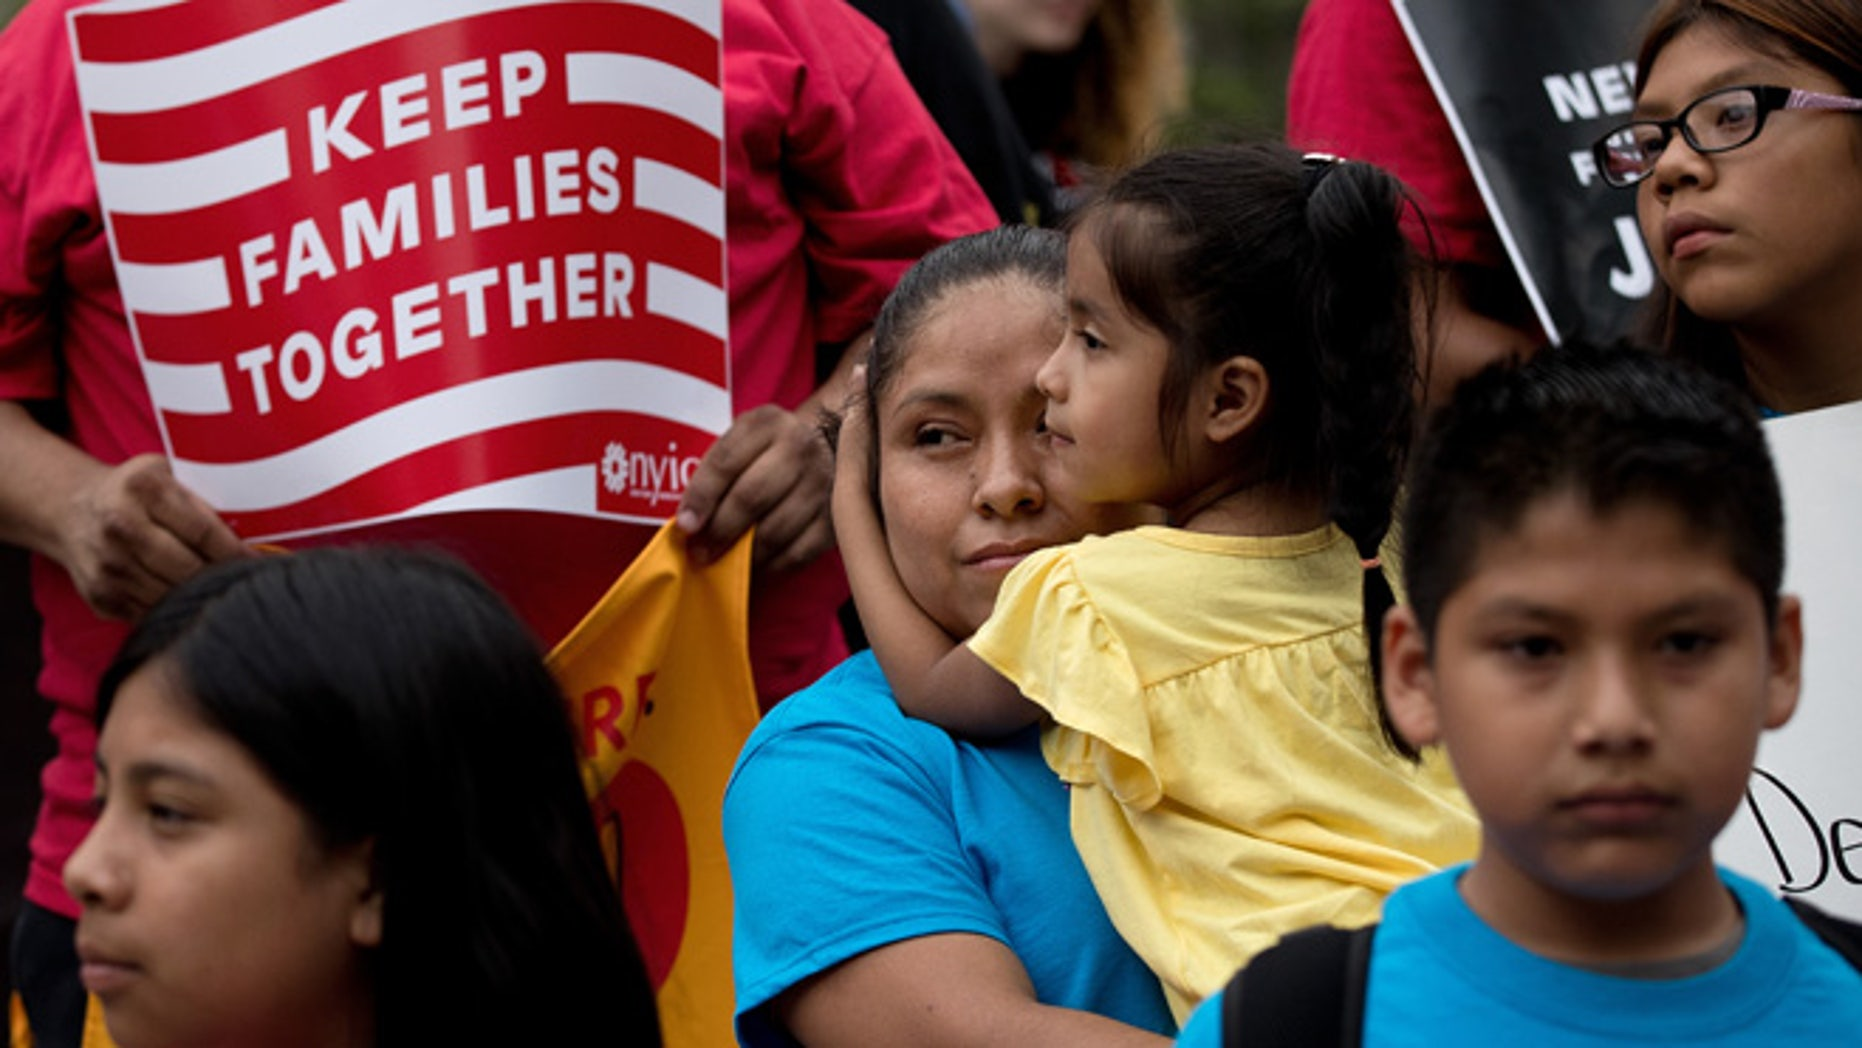 An immigration reform rally on June 28, 2016 in New York City, New York.